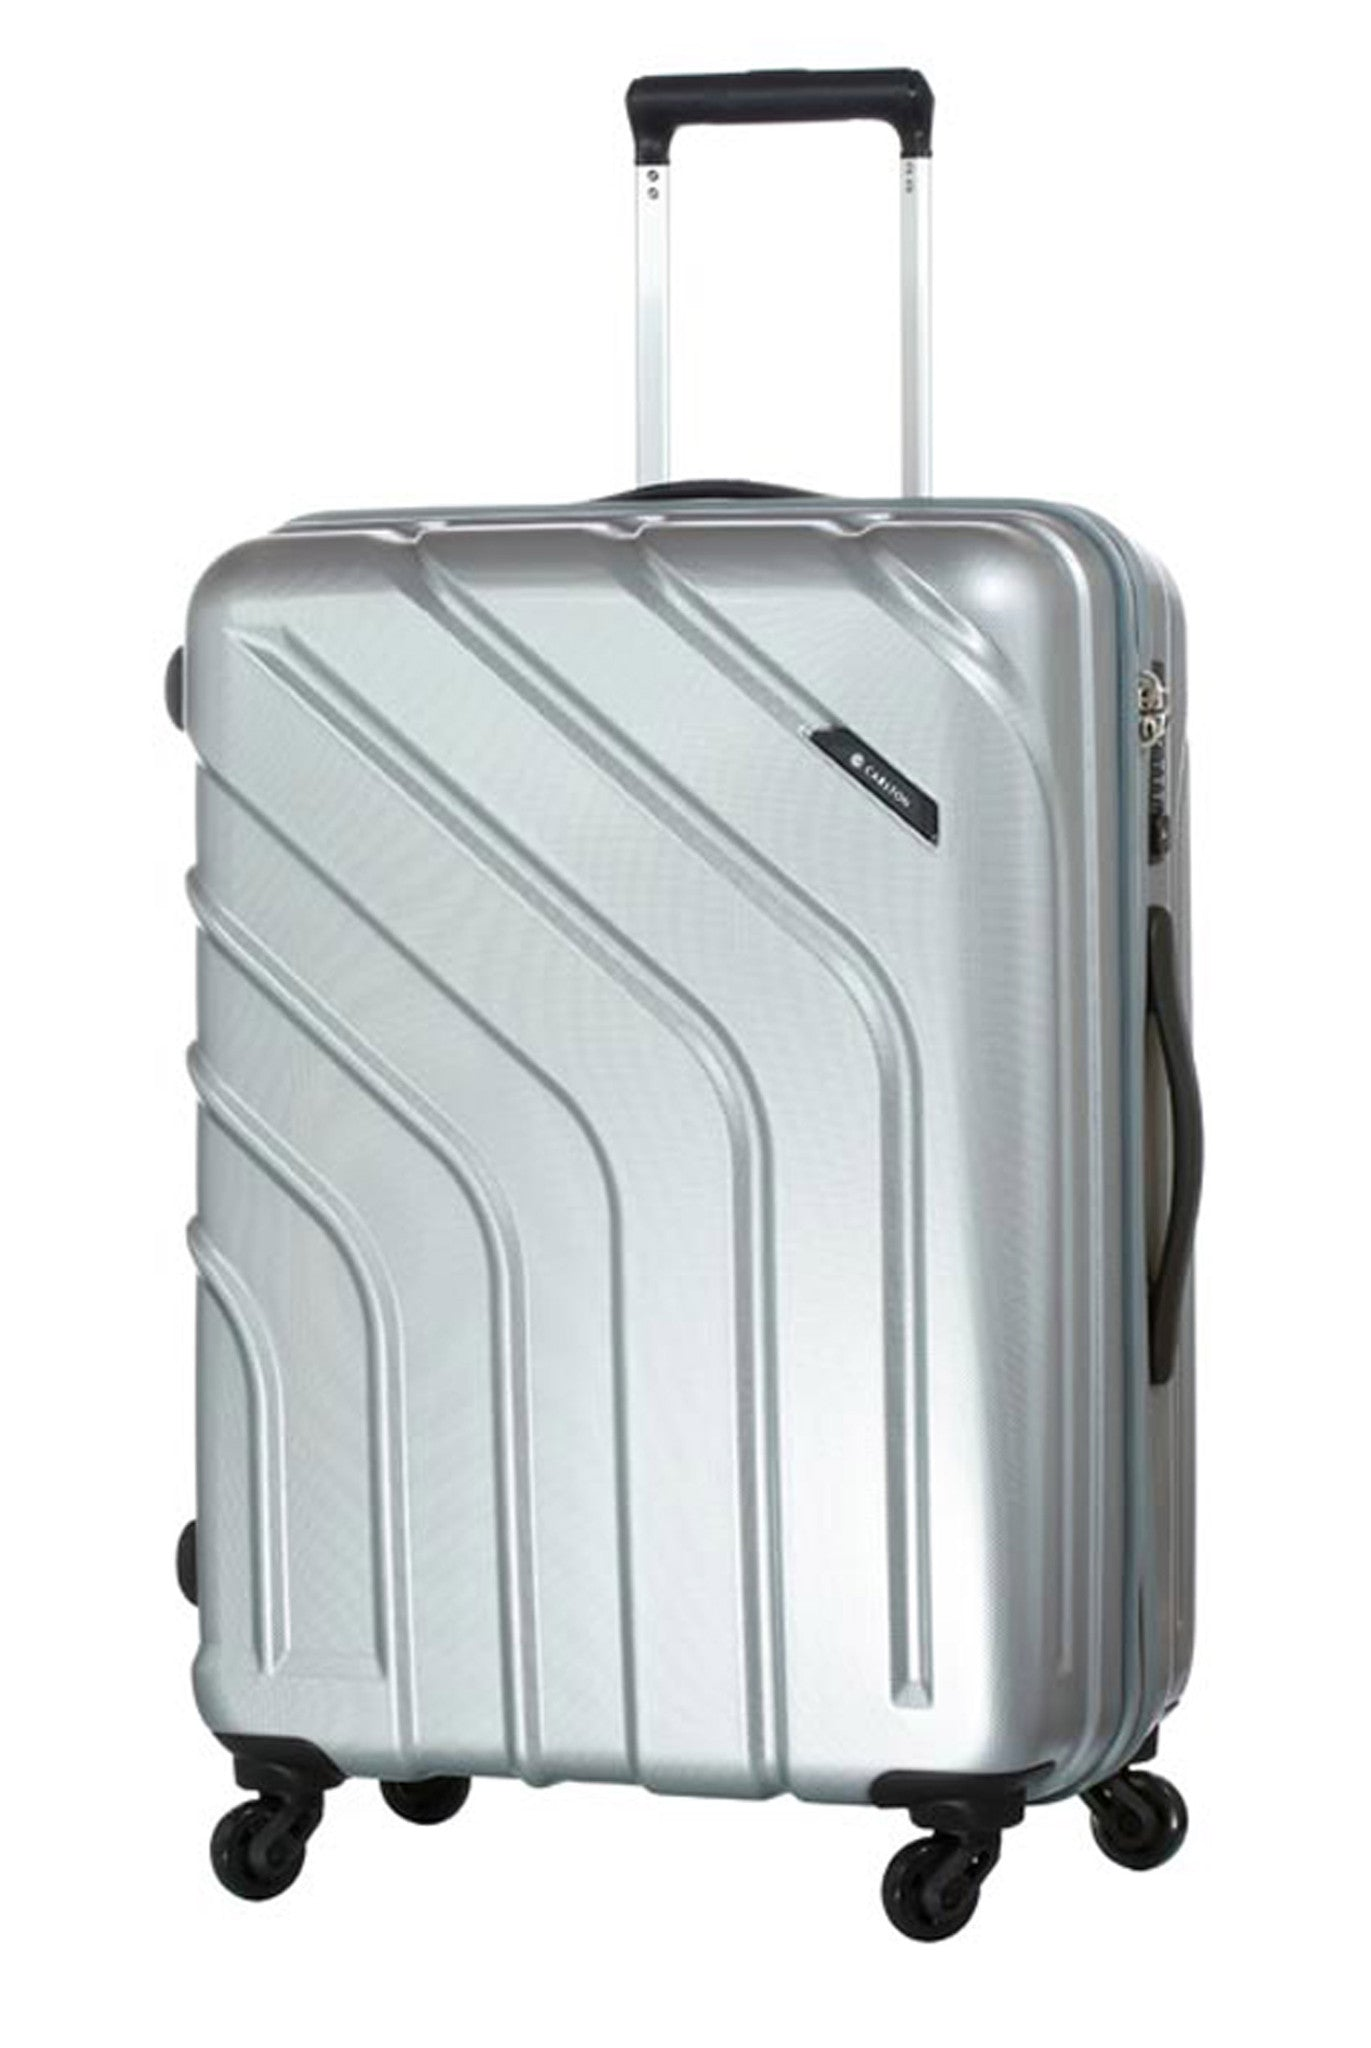 Carlton Stellar Luggage 80cm Trolley Case